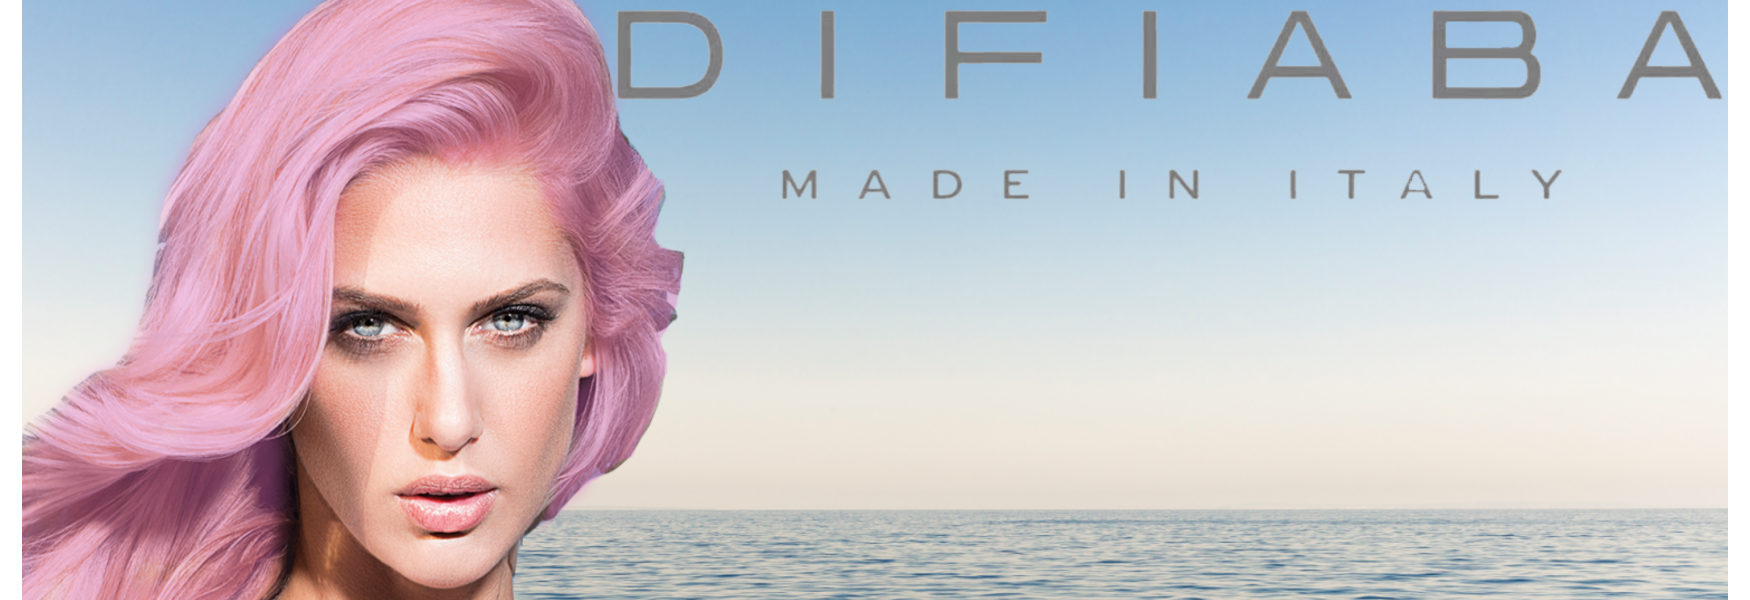 Difiaba Webpage Banner #1